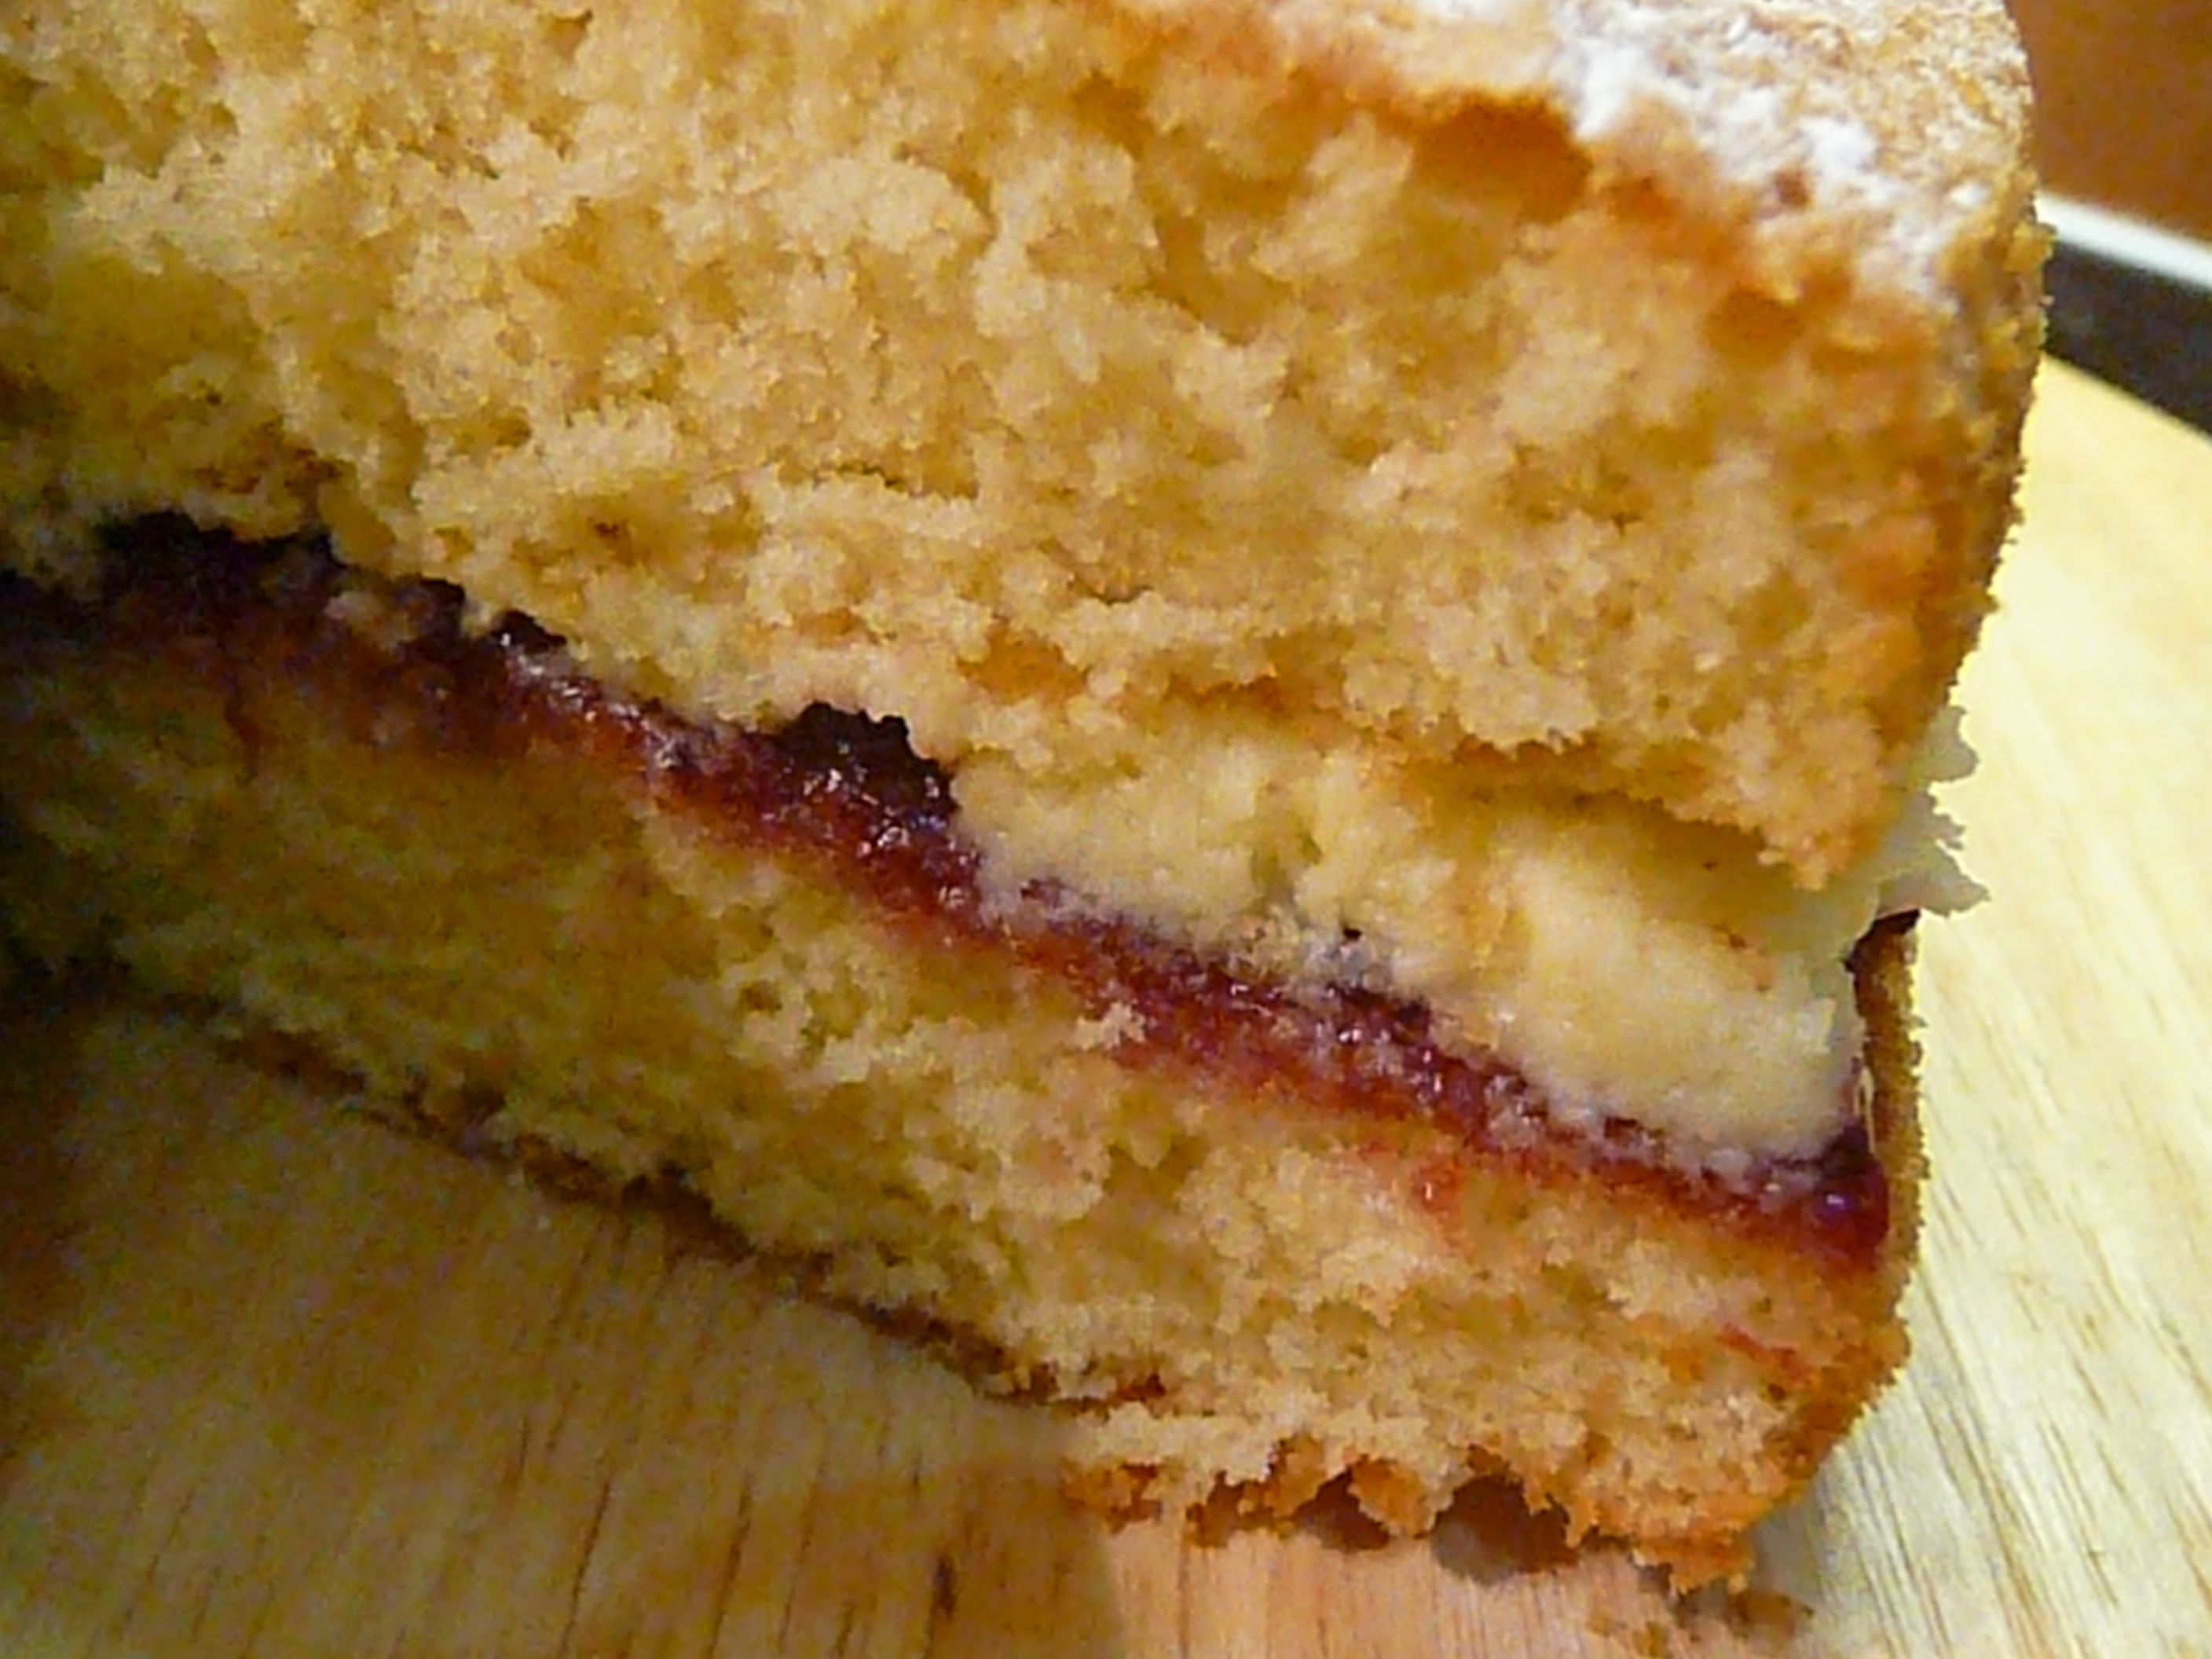 quick cake recipes Even more stuff to eat Pinterest Quick cake